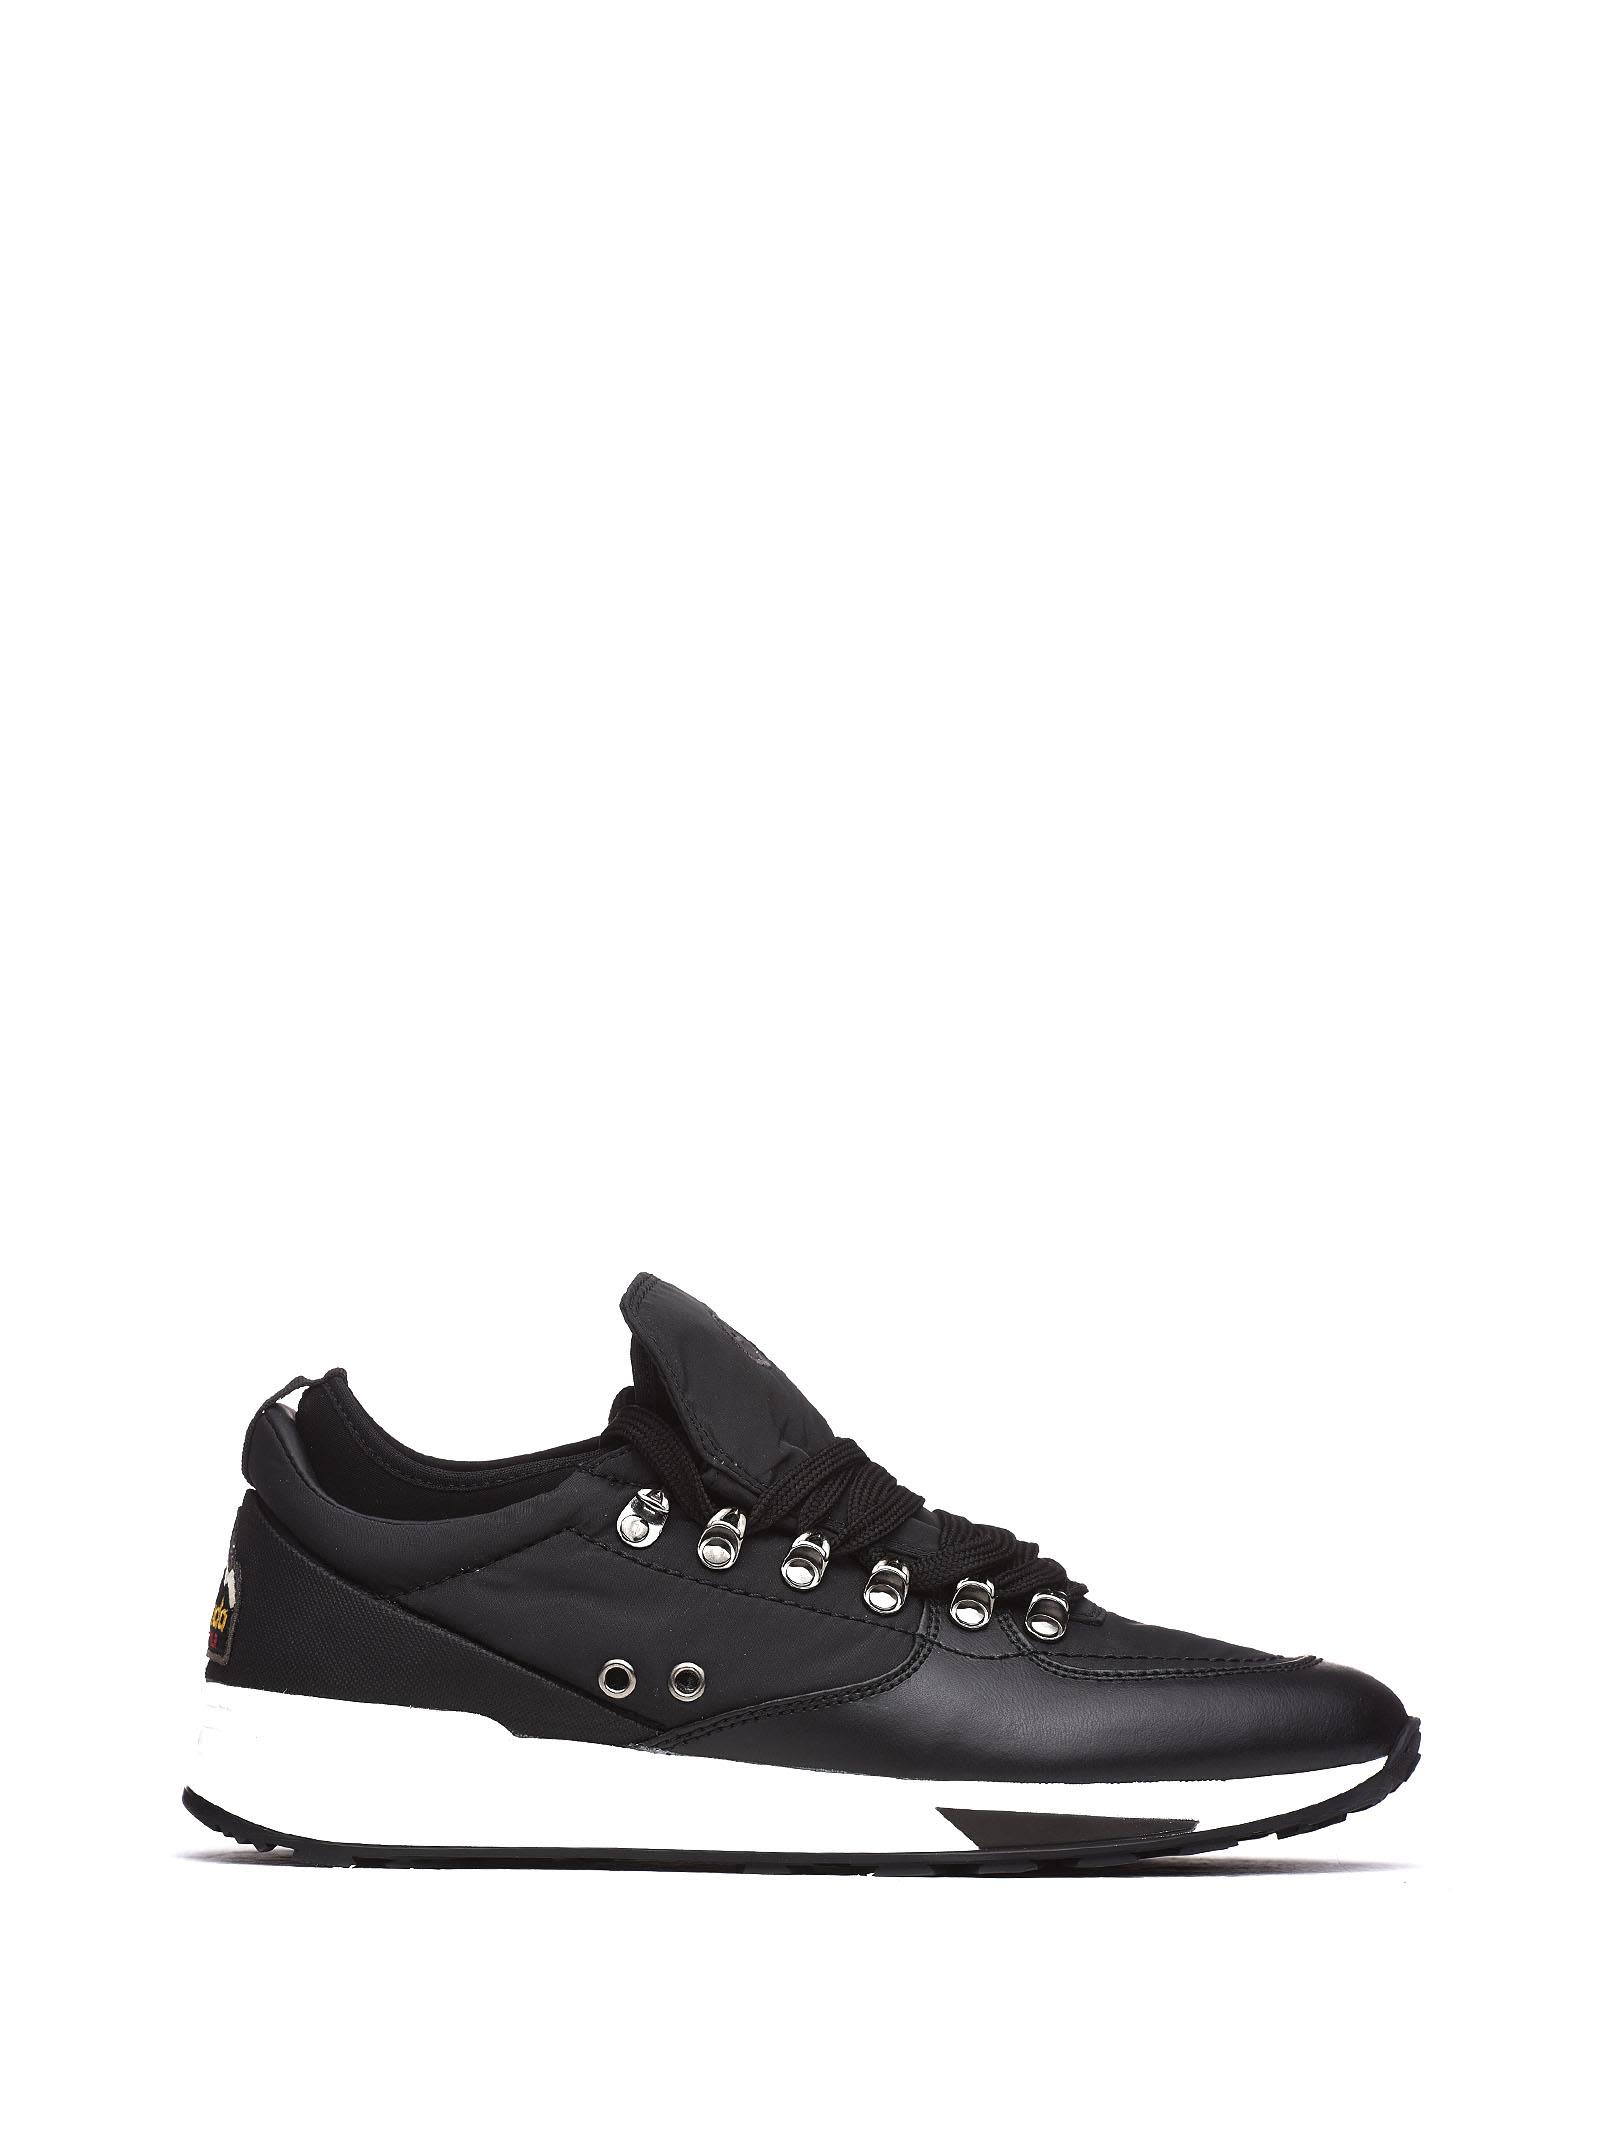 BARRACUDA Sneakers In Leatehr And Fabric in Nero